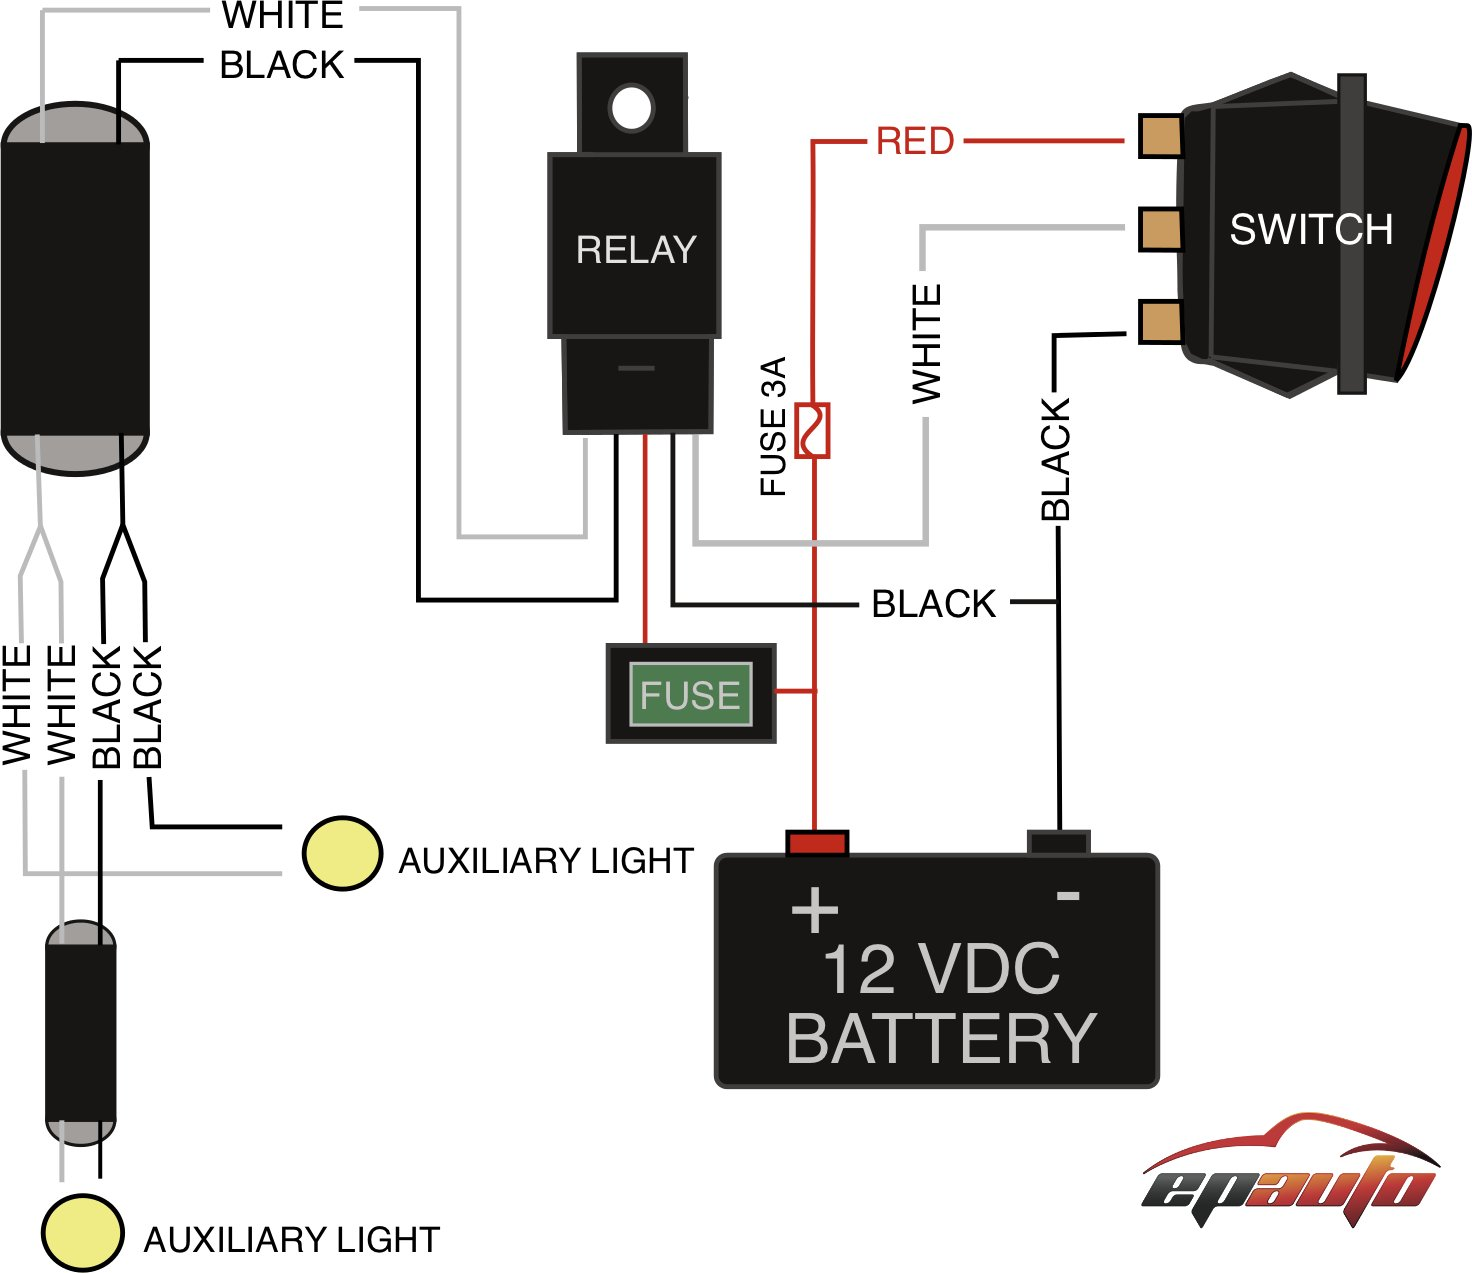 led light bar wiring schematics led light bar wiring harness diagram - diagram stream wiring up led light bar diagram